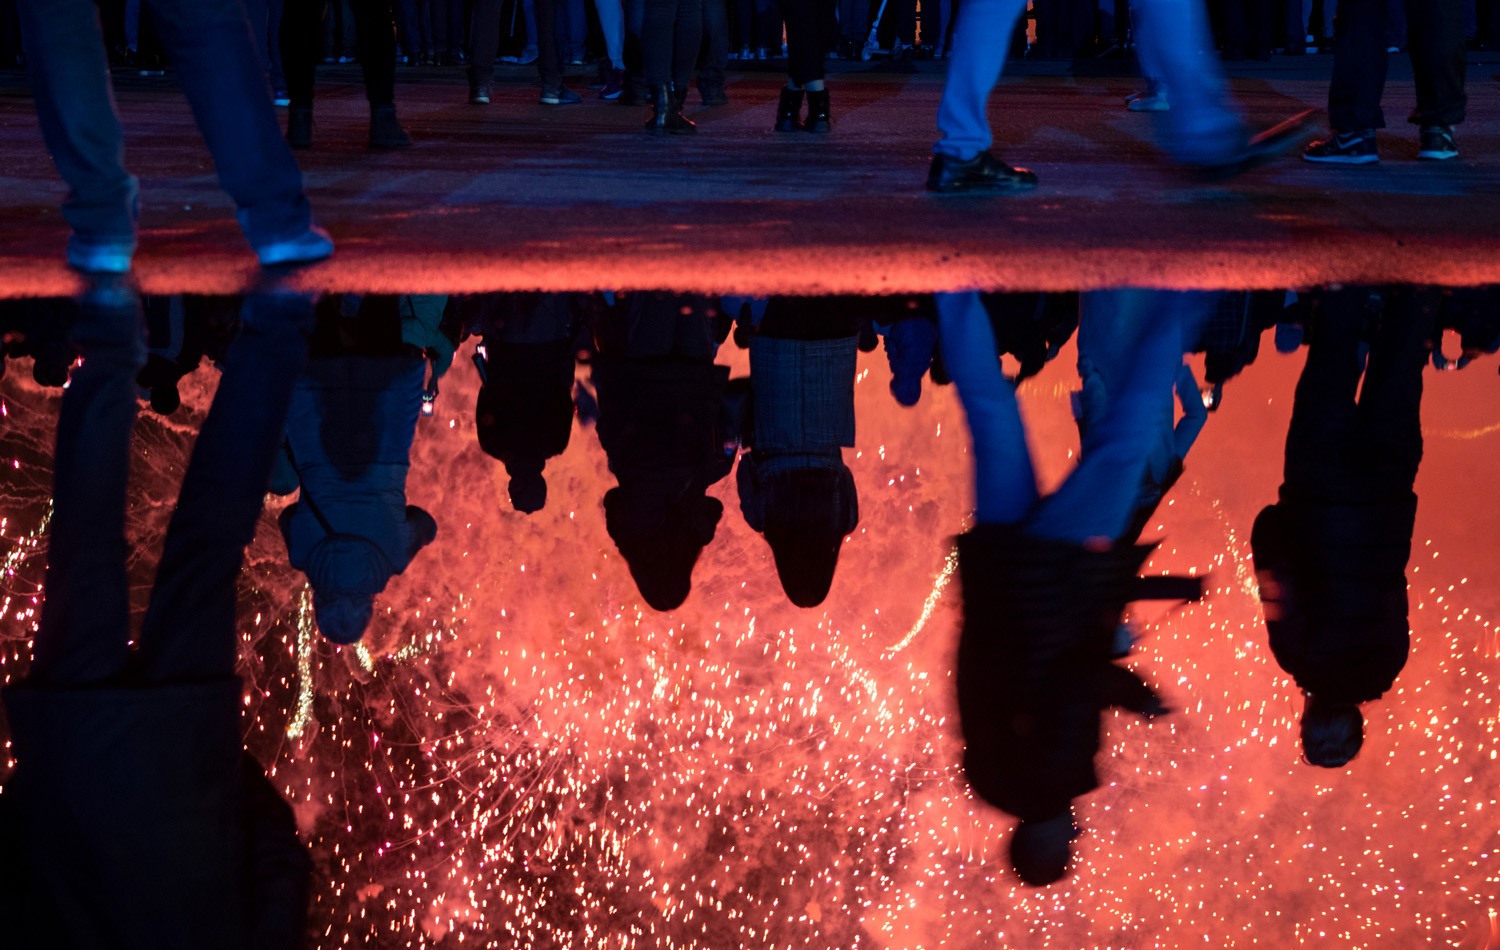 Spectators are reflected in a puddle as they watch fireworks at the International show Circle of Light in Moscow